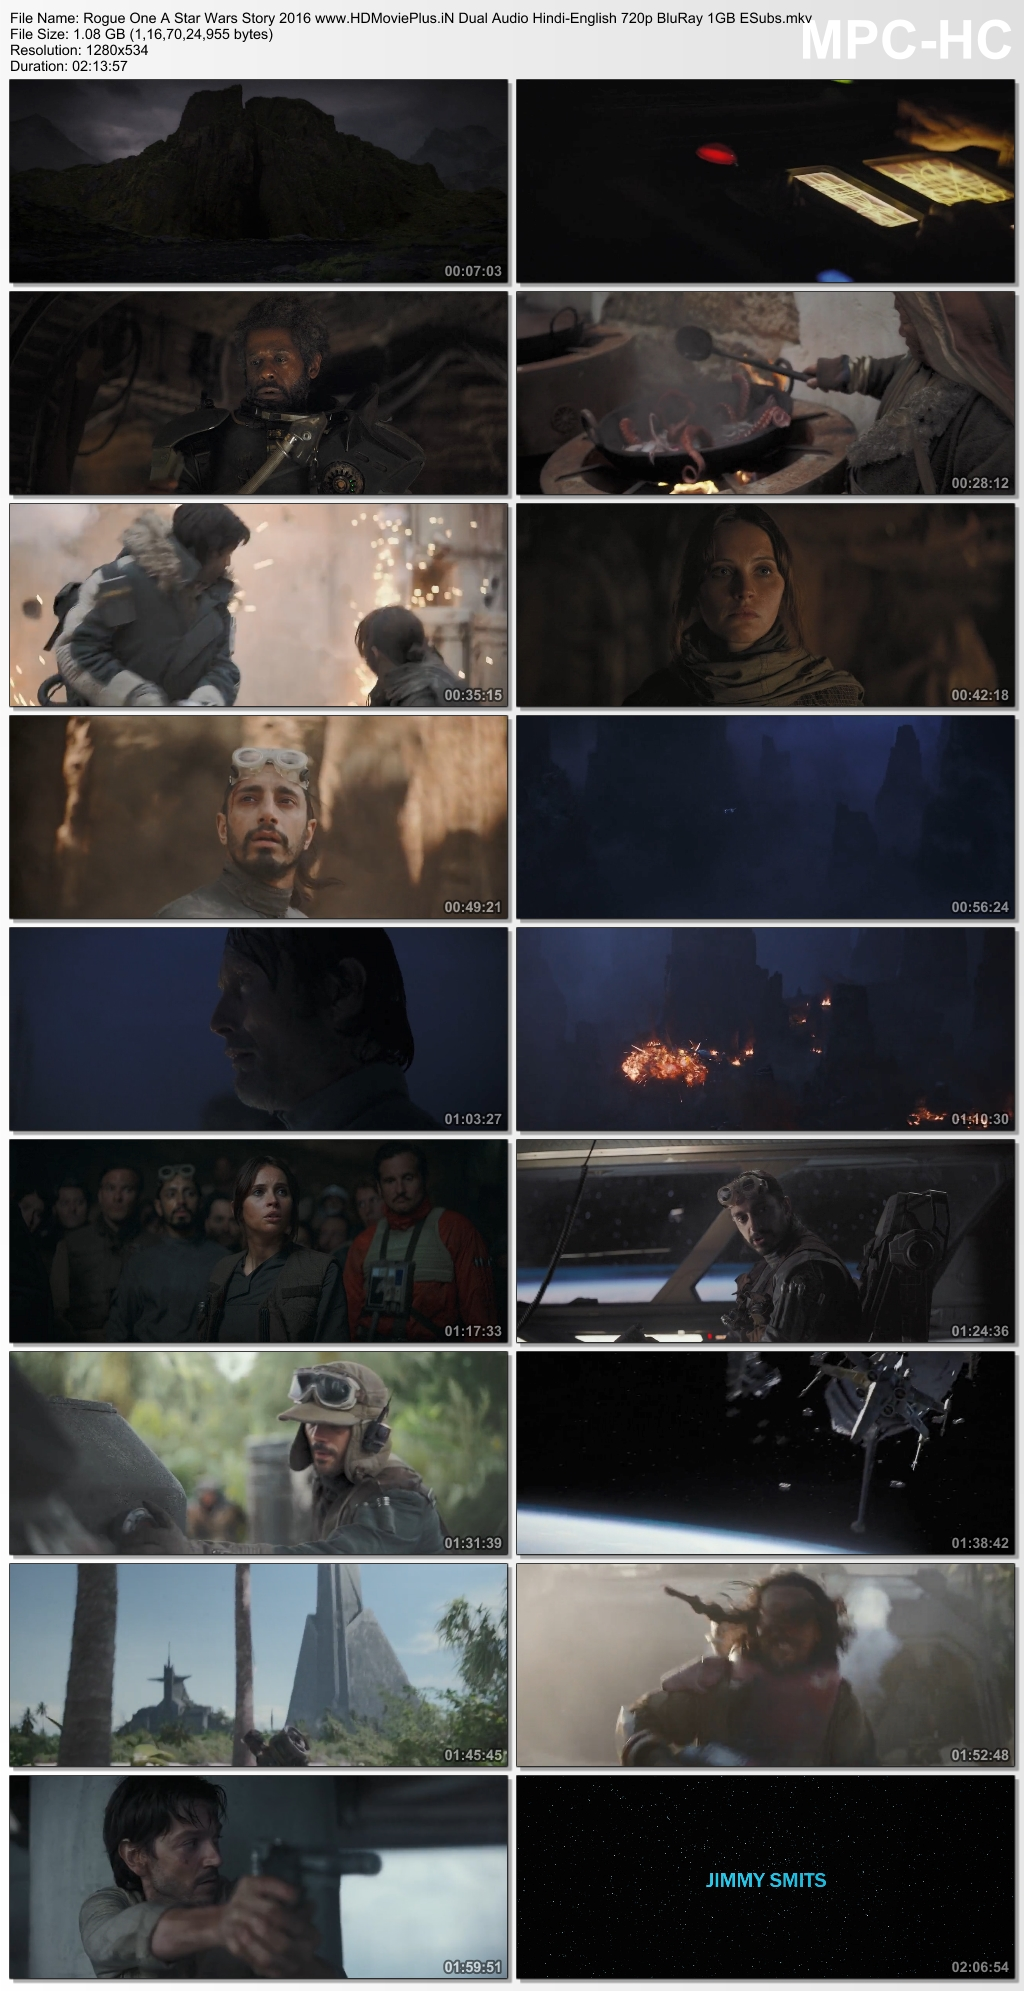 Rogue One: A Star Wars Story 2016 Dual Audio